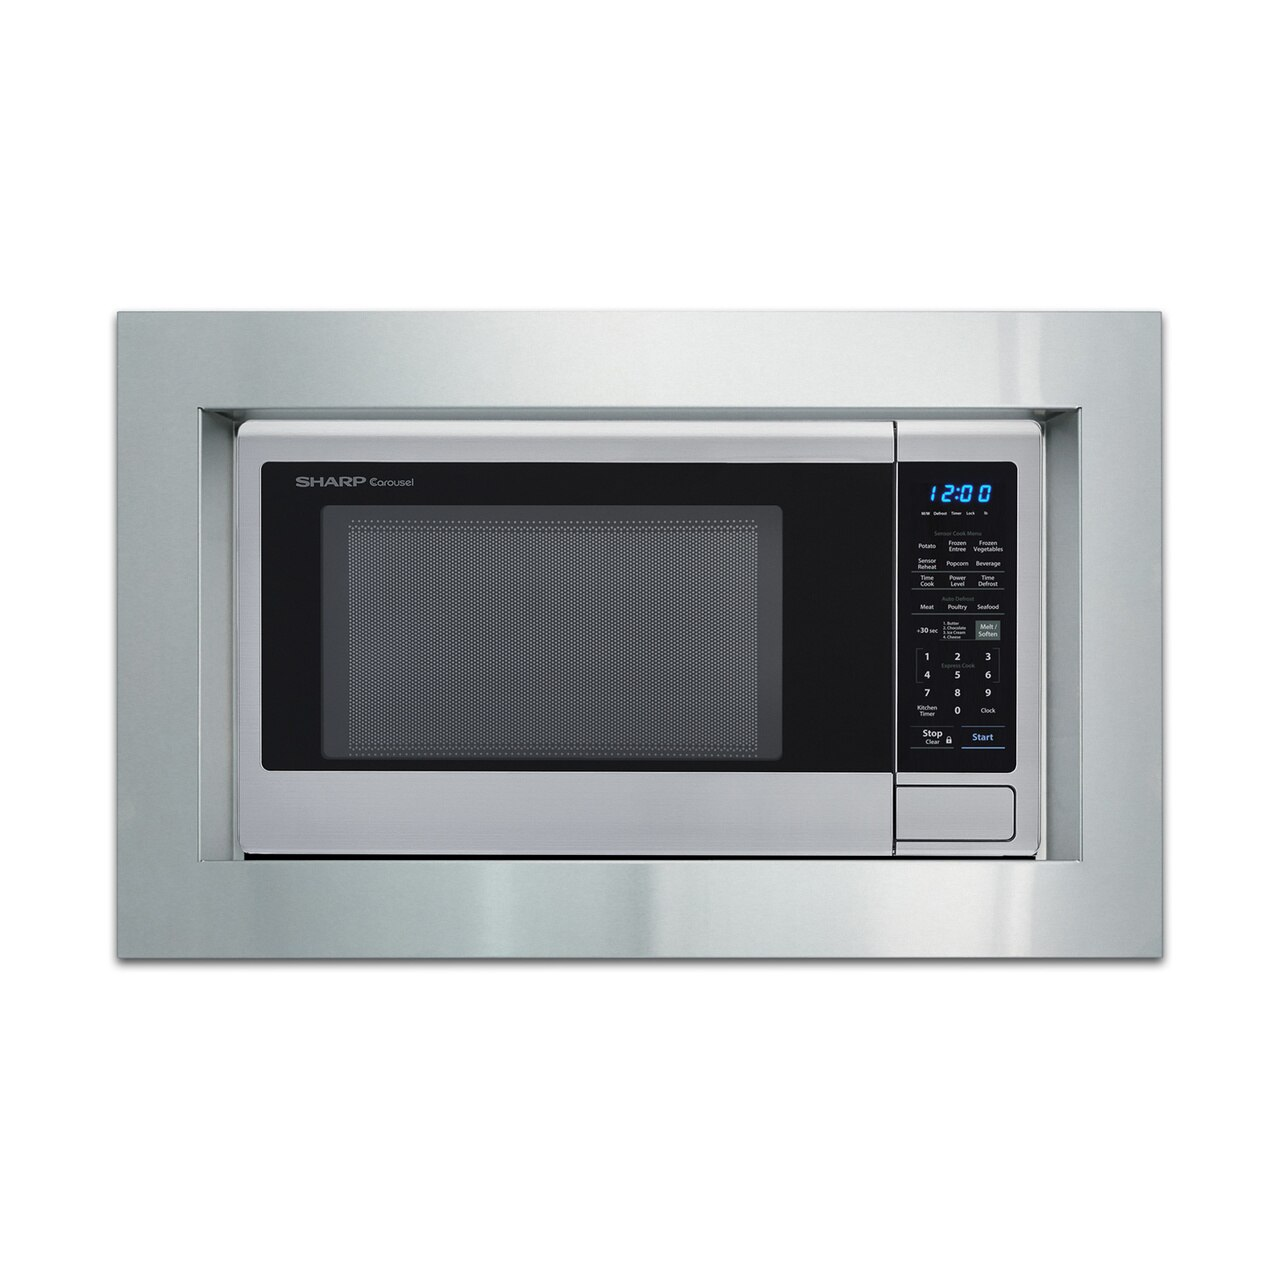 1.8 cu. ft. Sharp Stainless Steel Countertop Microwave (SMC1842CS) – with trim kit